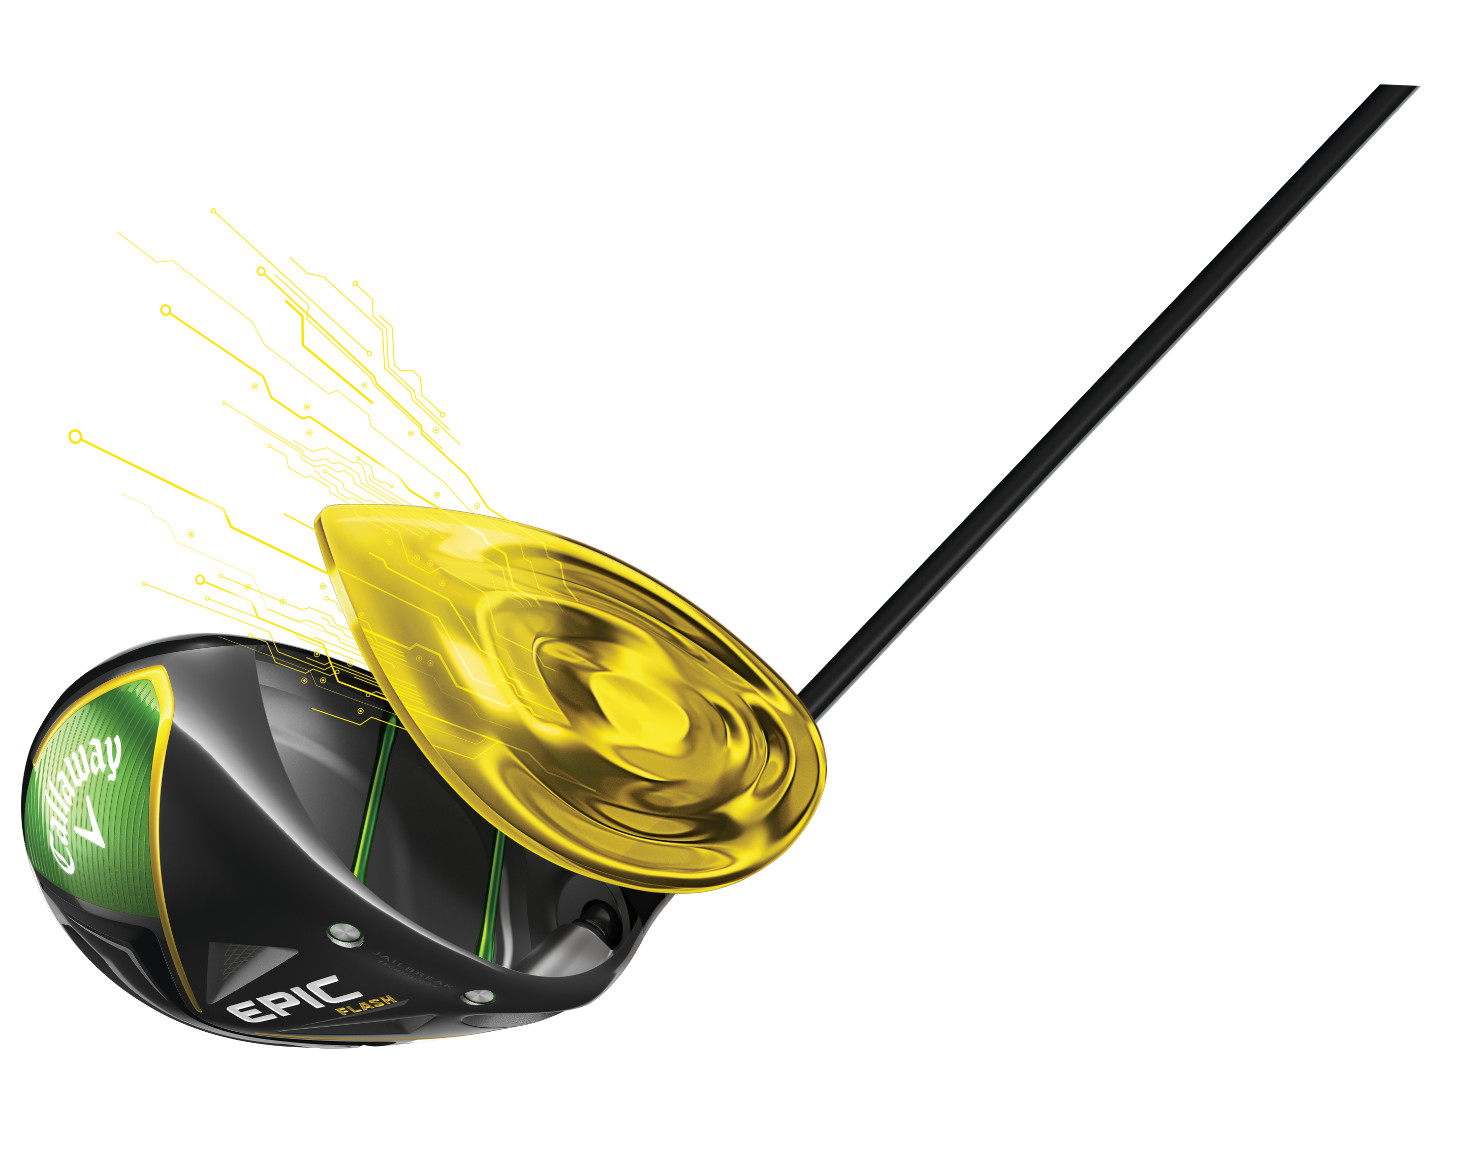 Callaway used AI technology in developing the Flash face